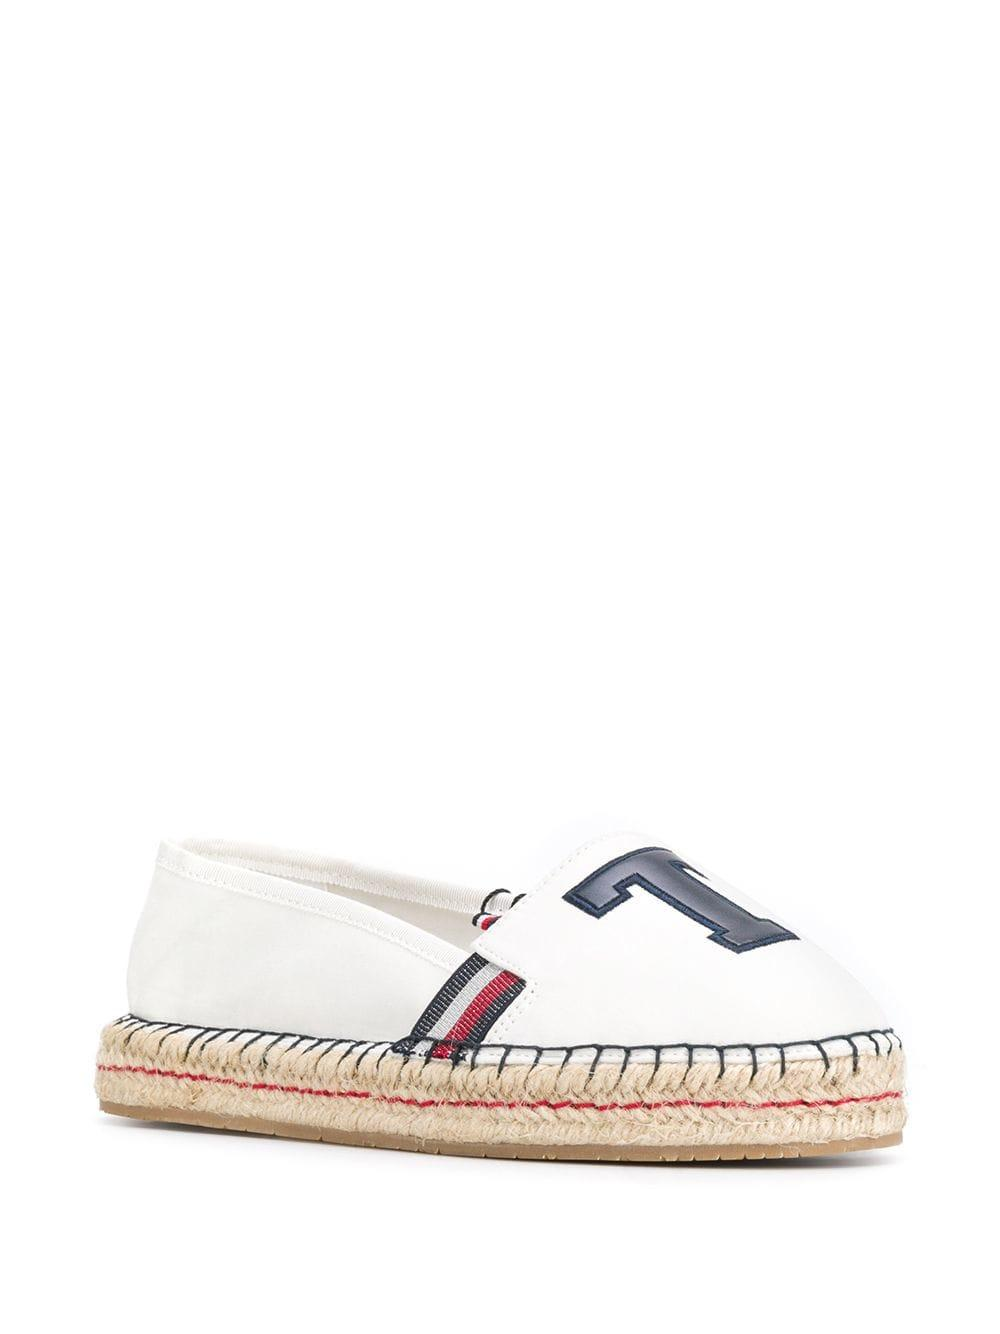 31b60449887 Lyst - Tommy Hilfiger Monogram Patch Espadrilles in White